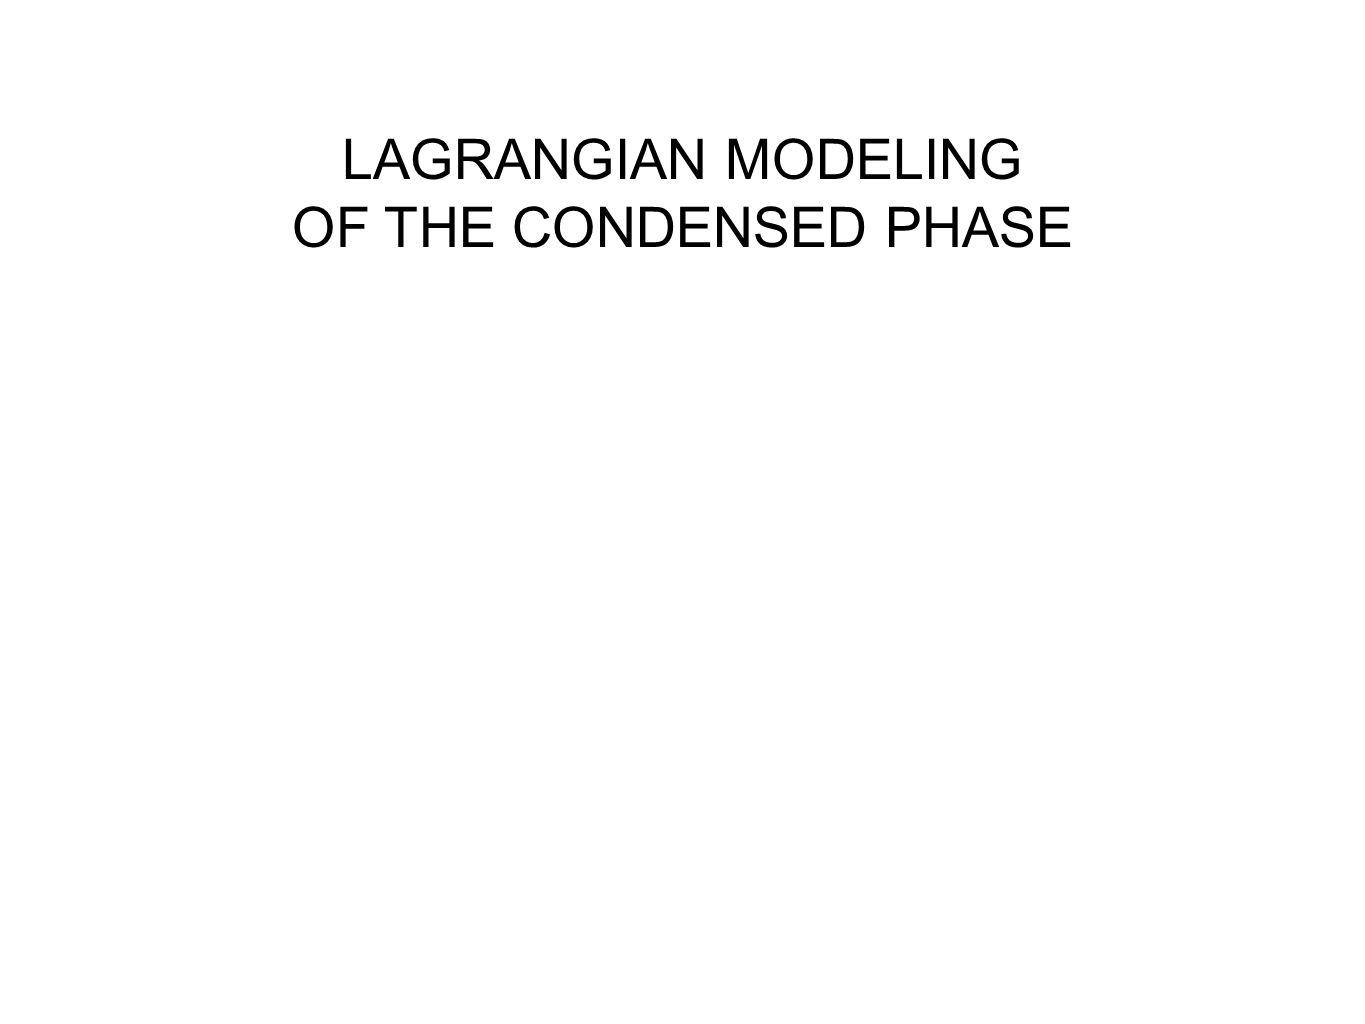 LAGRANGIAN MODELING OF THE CONDENSED PHASE